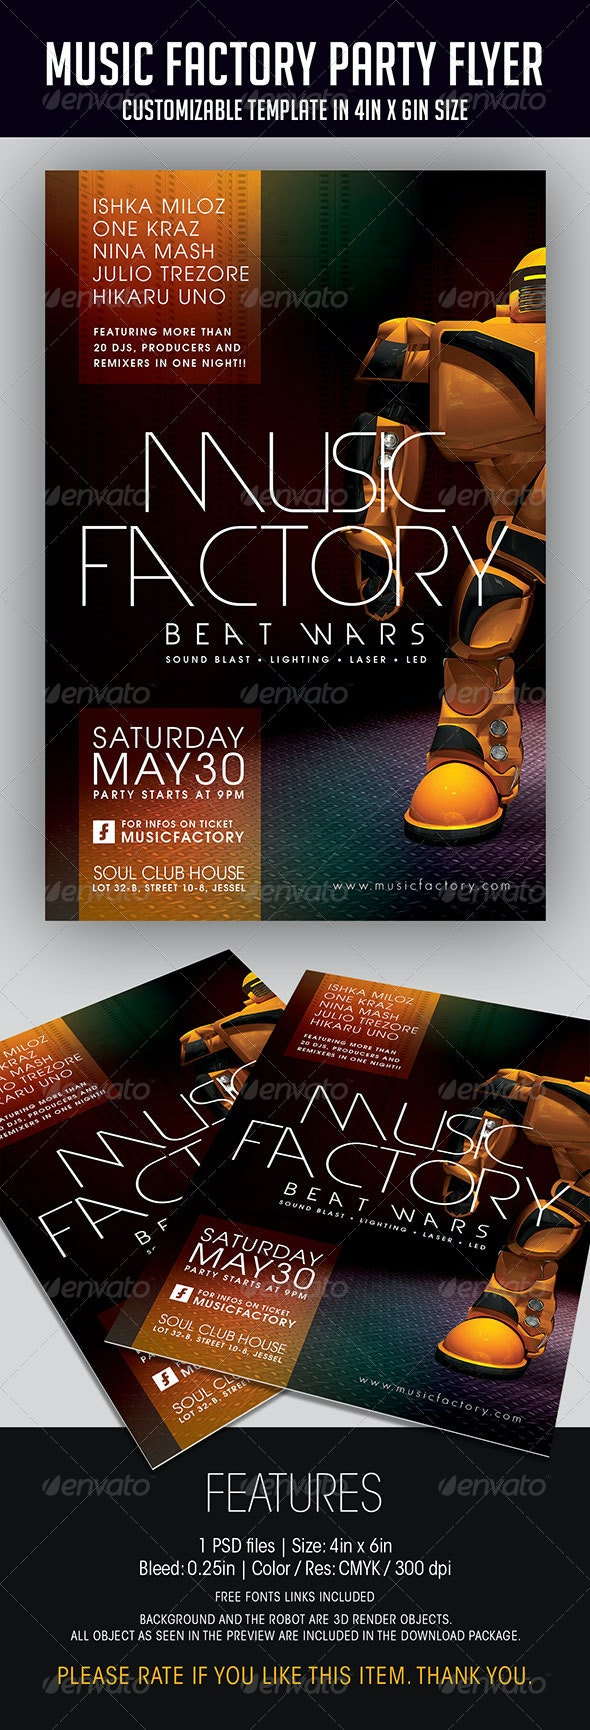 Music Factory Party Flyer - Clubs & Parties Events